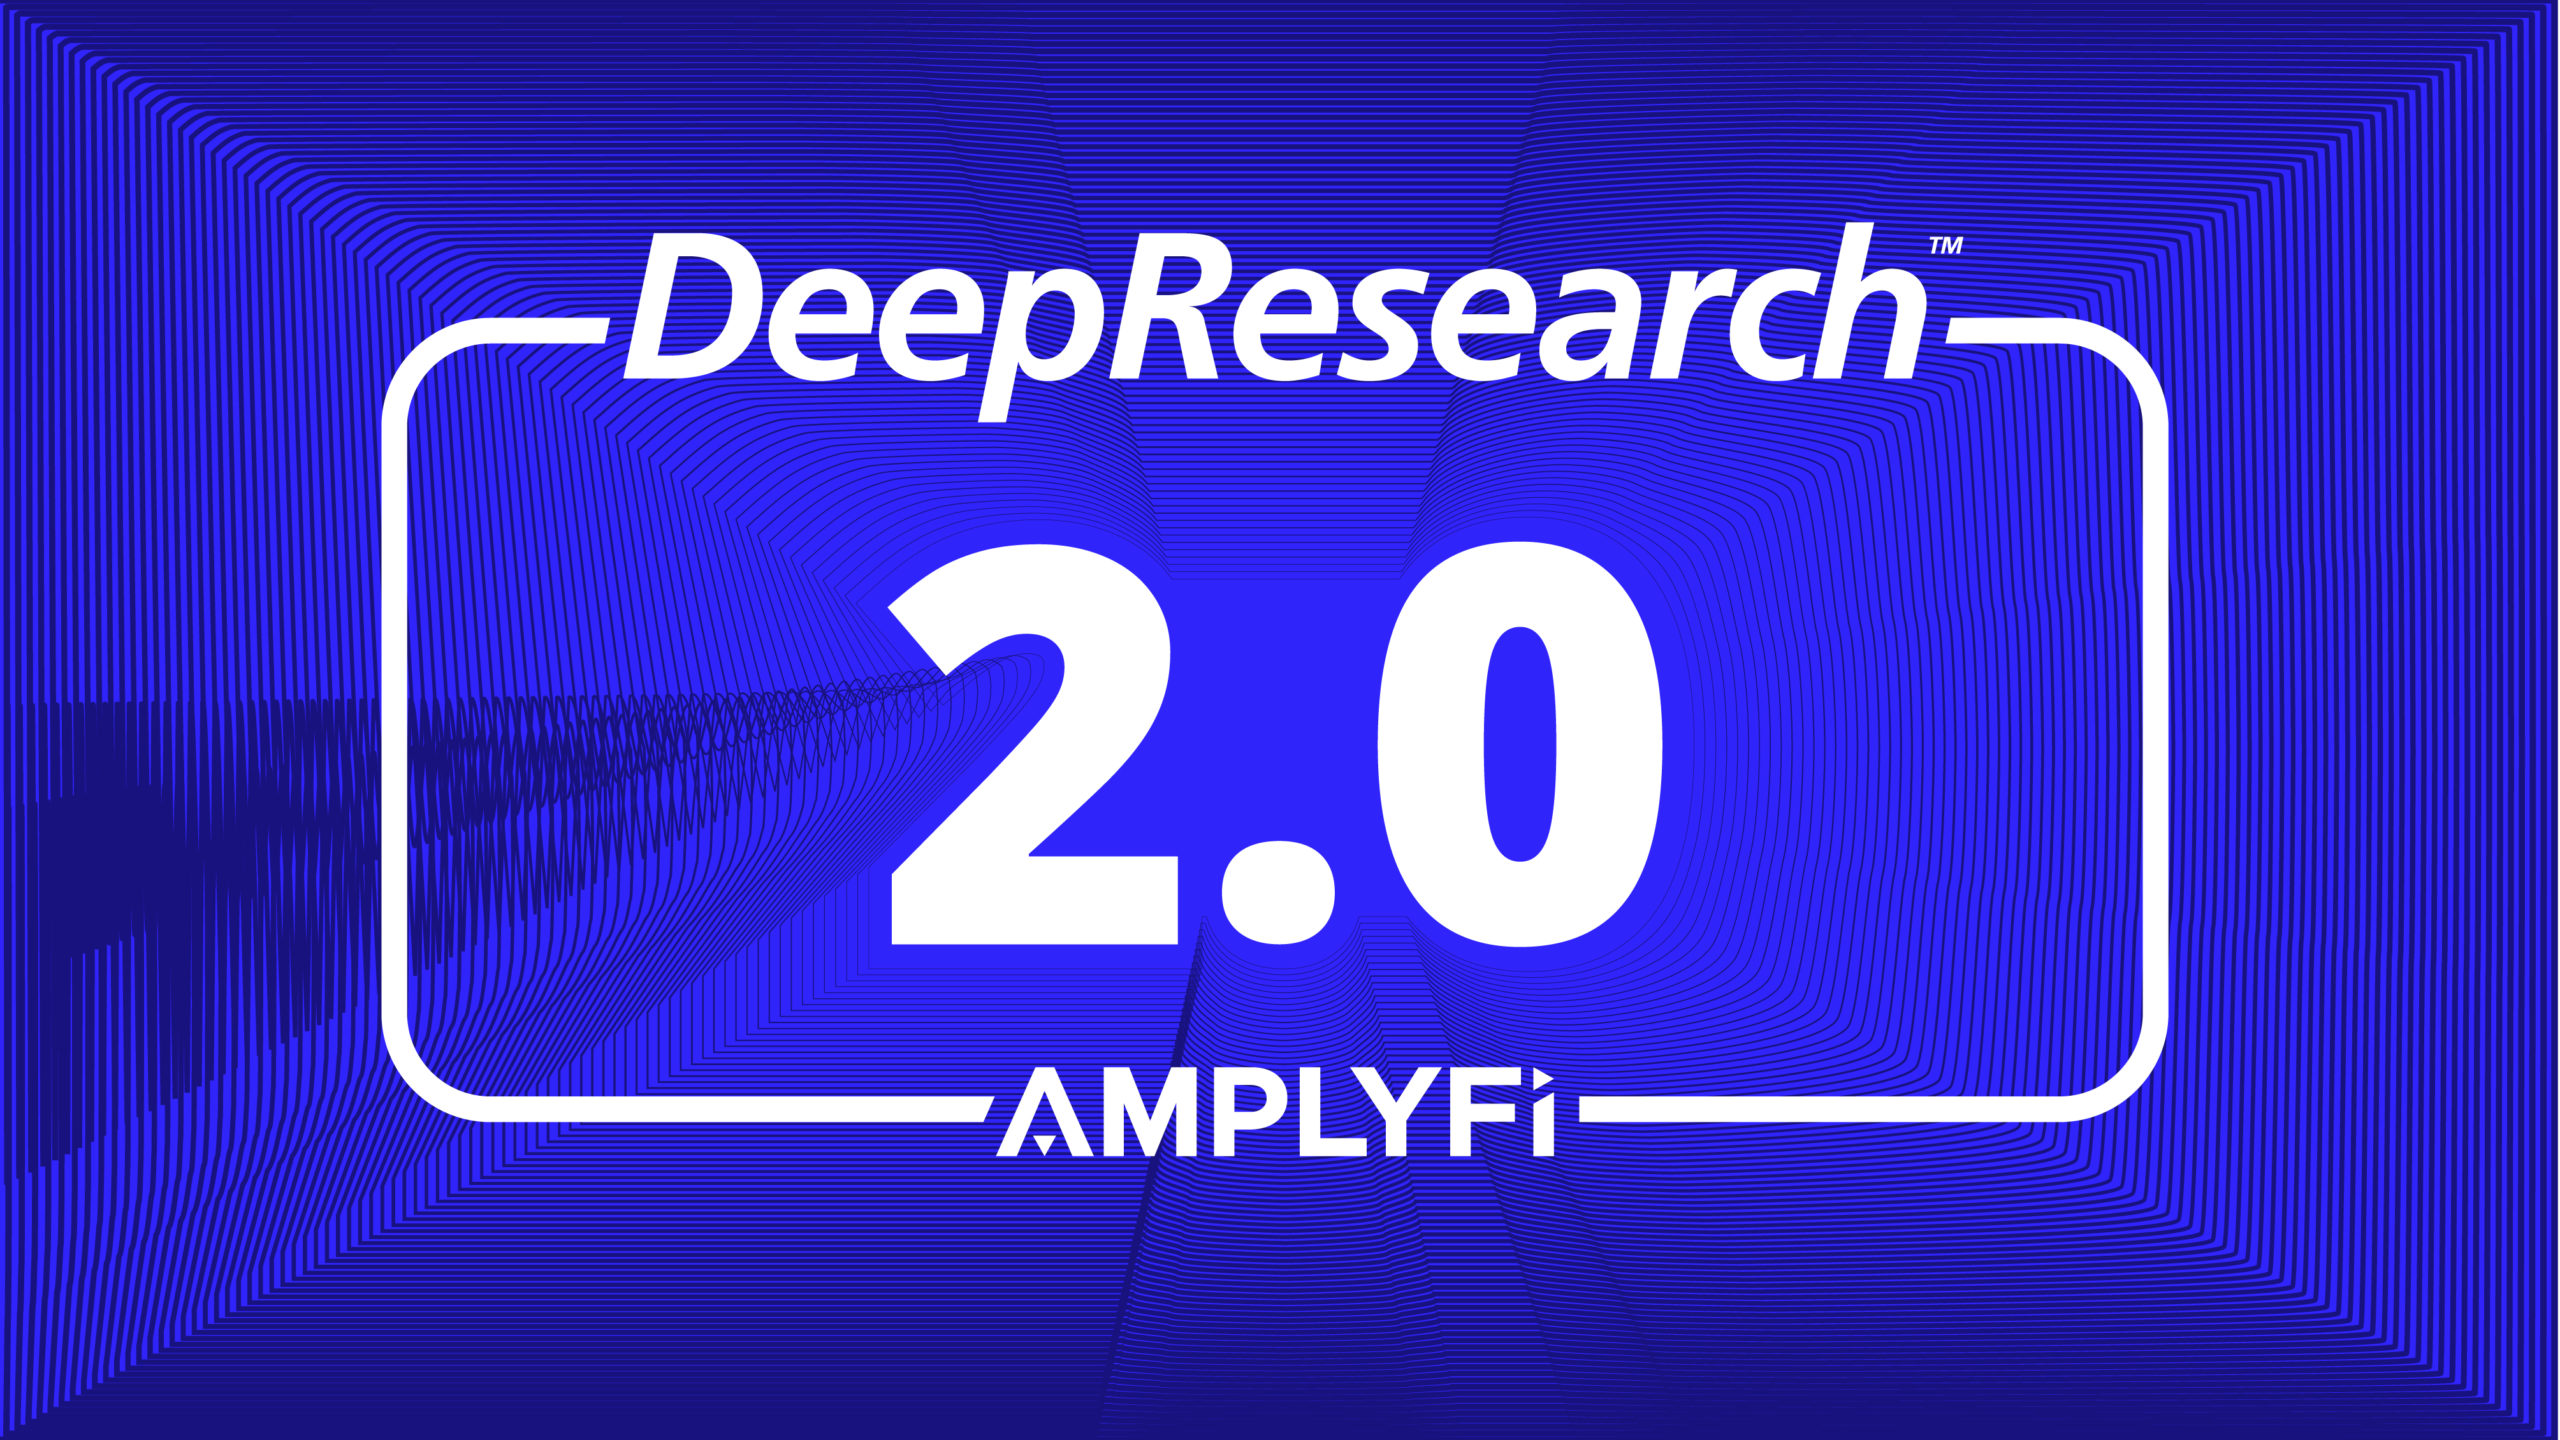 DeepResearch 2.0 Launched